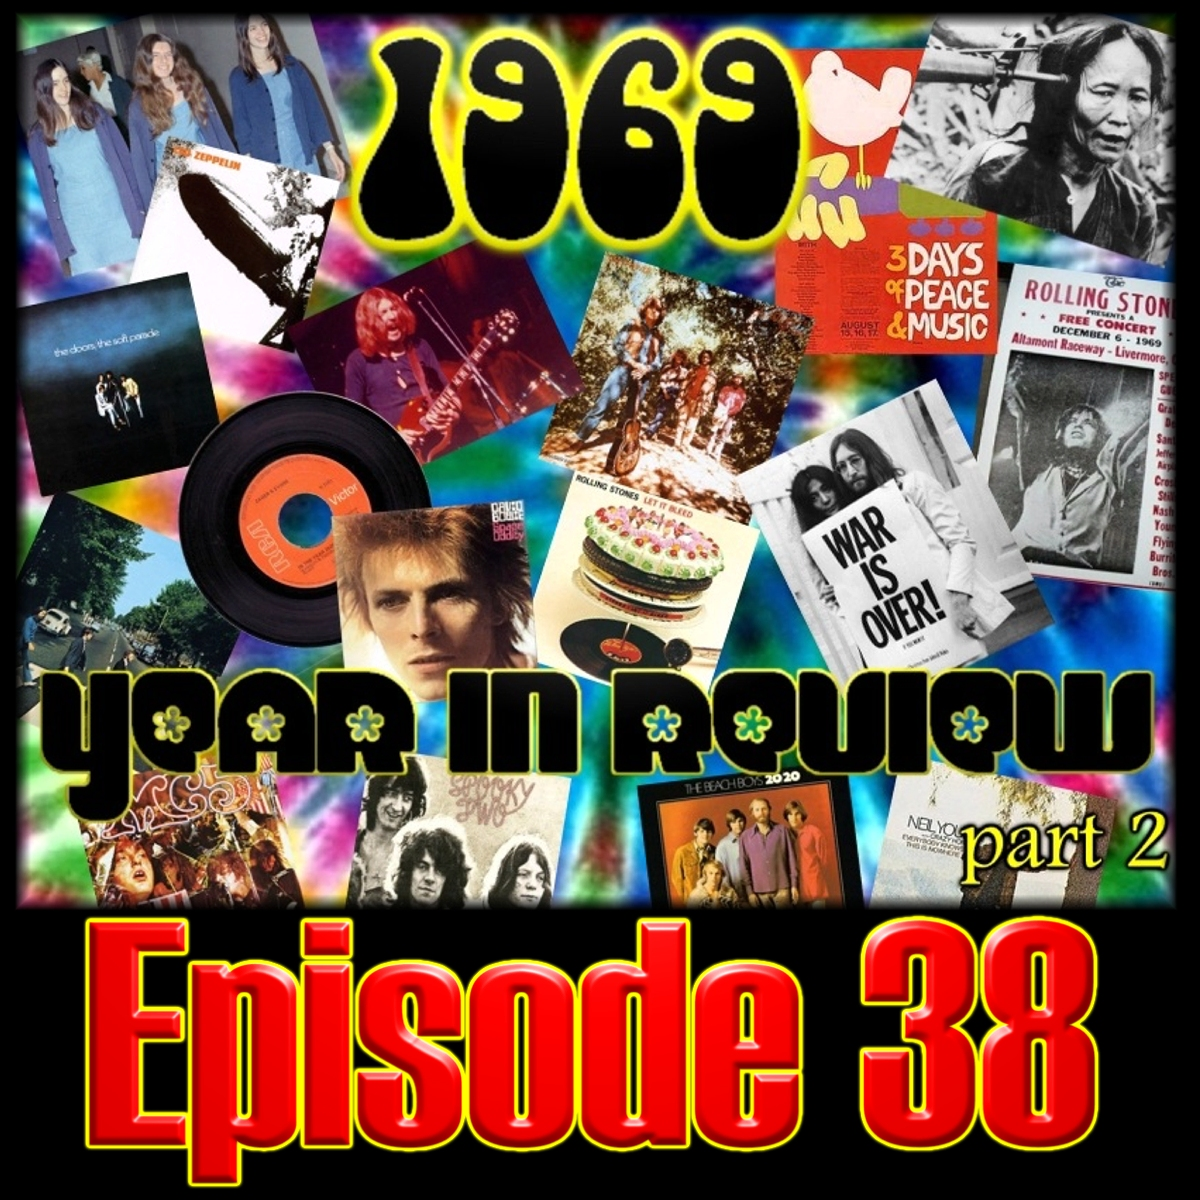 Episode 38 - 1969 Year in Review Part 2